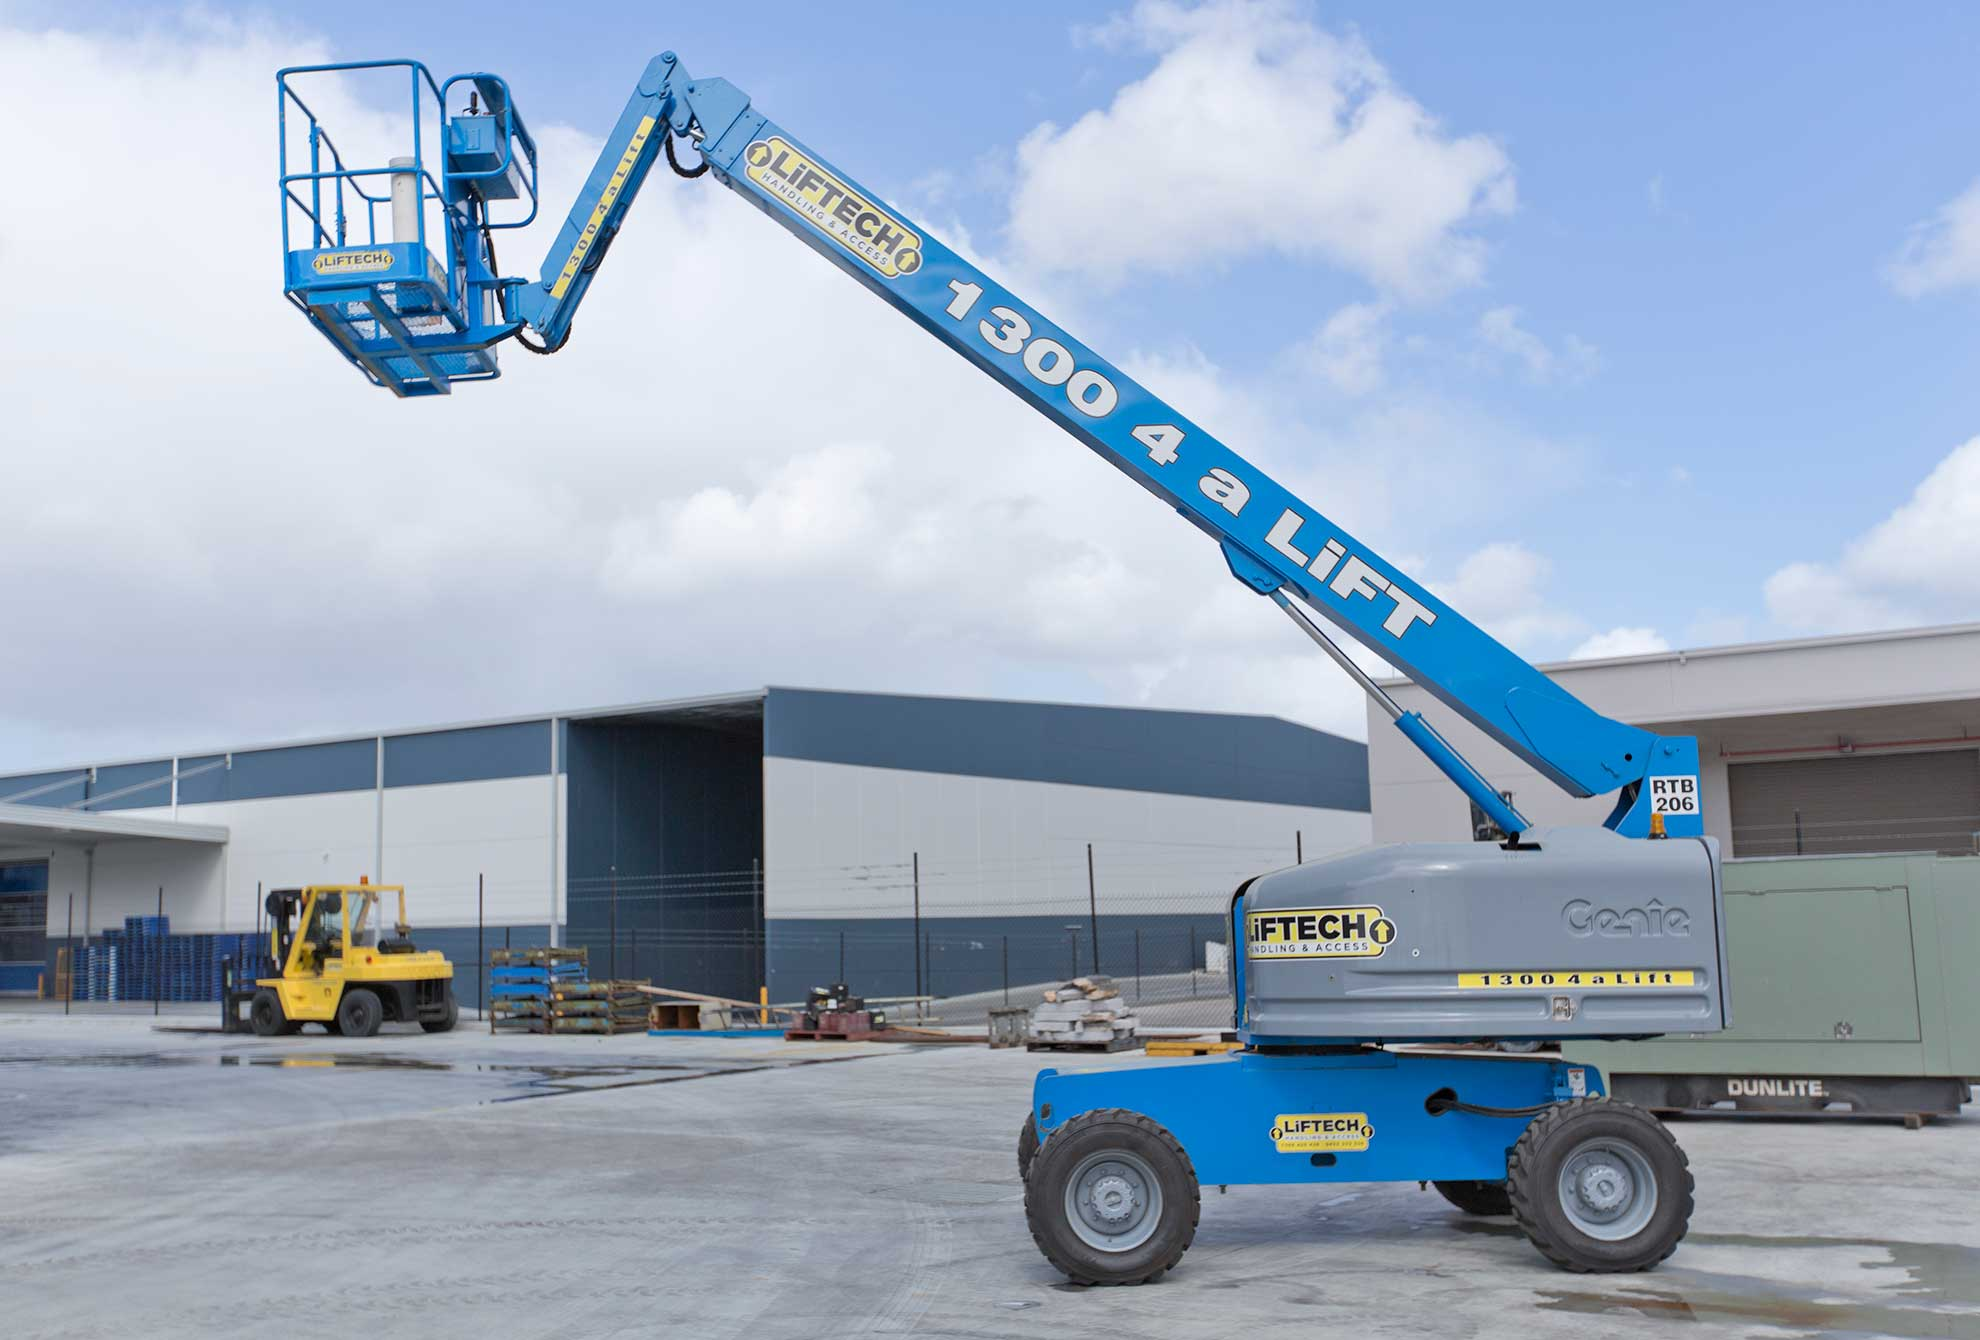 14m RT Straight Boom Lift for Hire